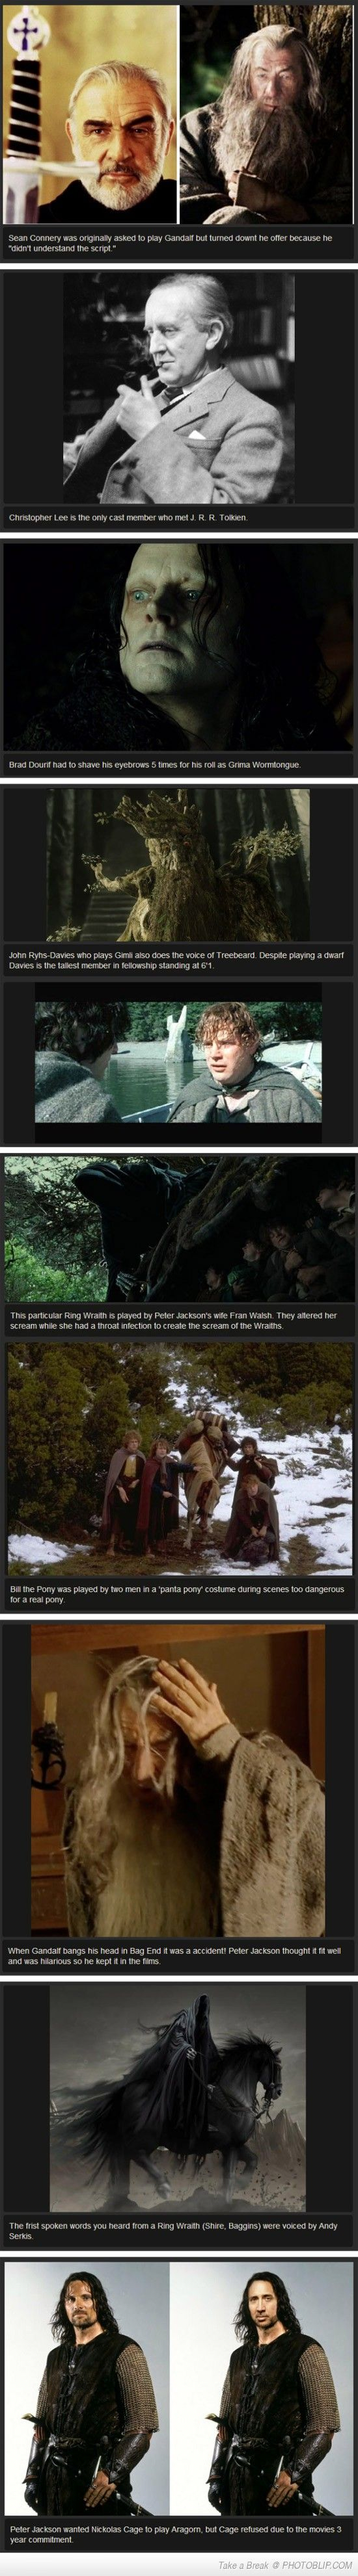 Lord Of The Rings Facts - So glad Nicholas Cage turned it down!